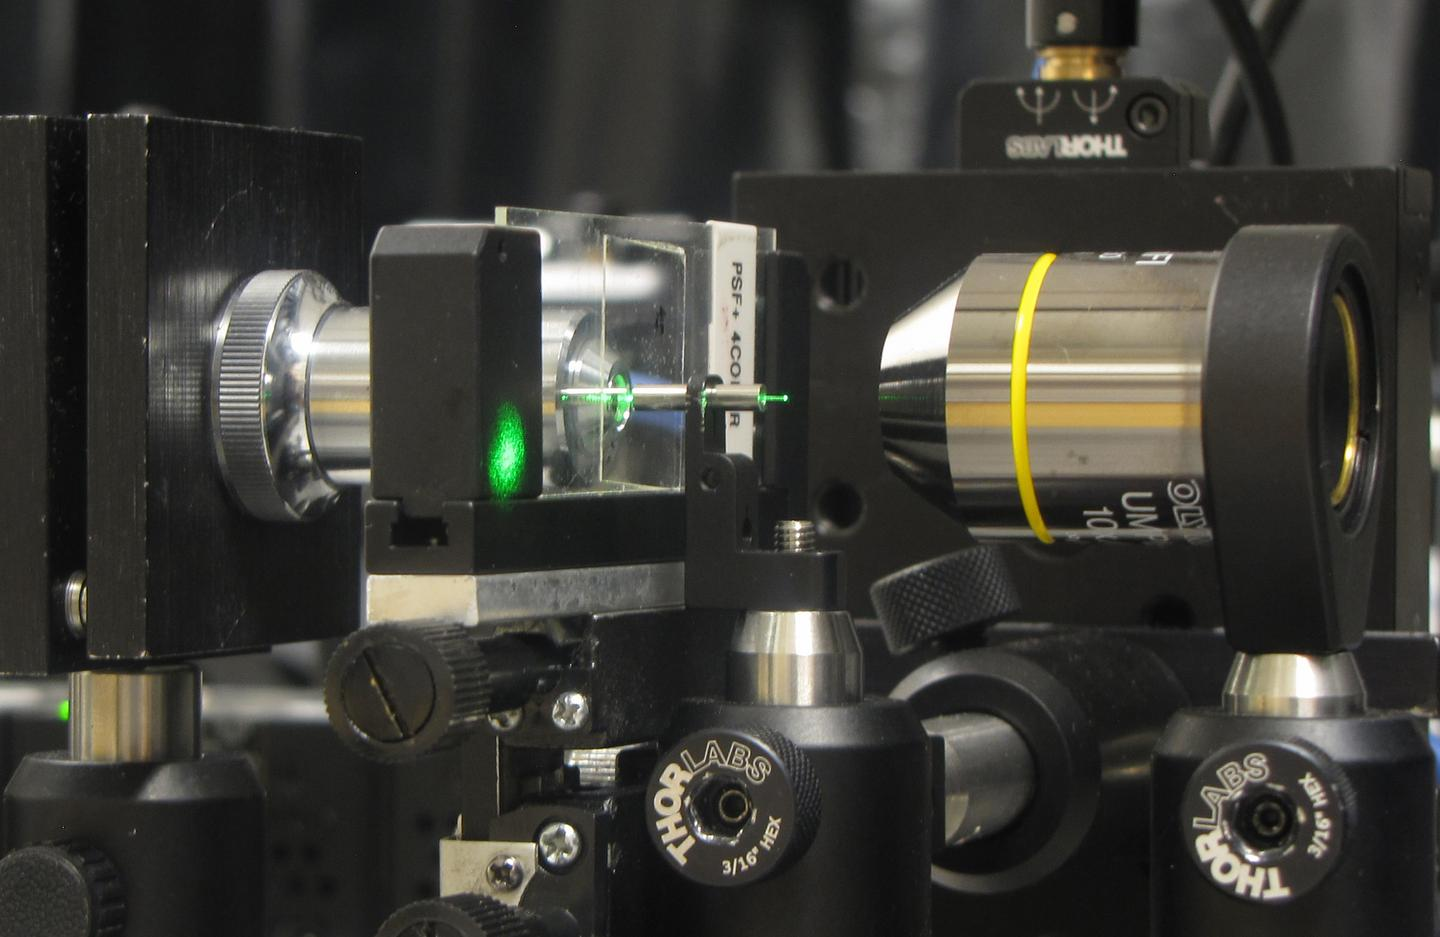 Using a US$40 needle, the scientists created a 3D microscope capable of creating images with a resolution of around one micron (Photo: Ganghun Kim, University of Utah)